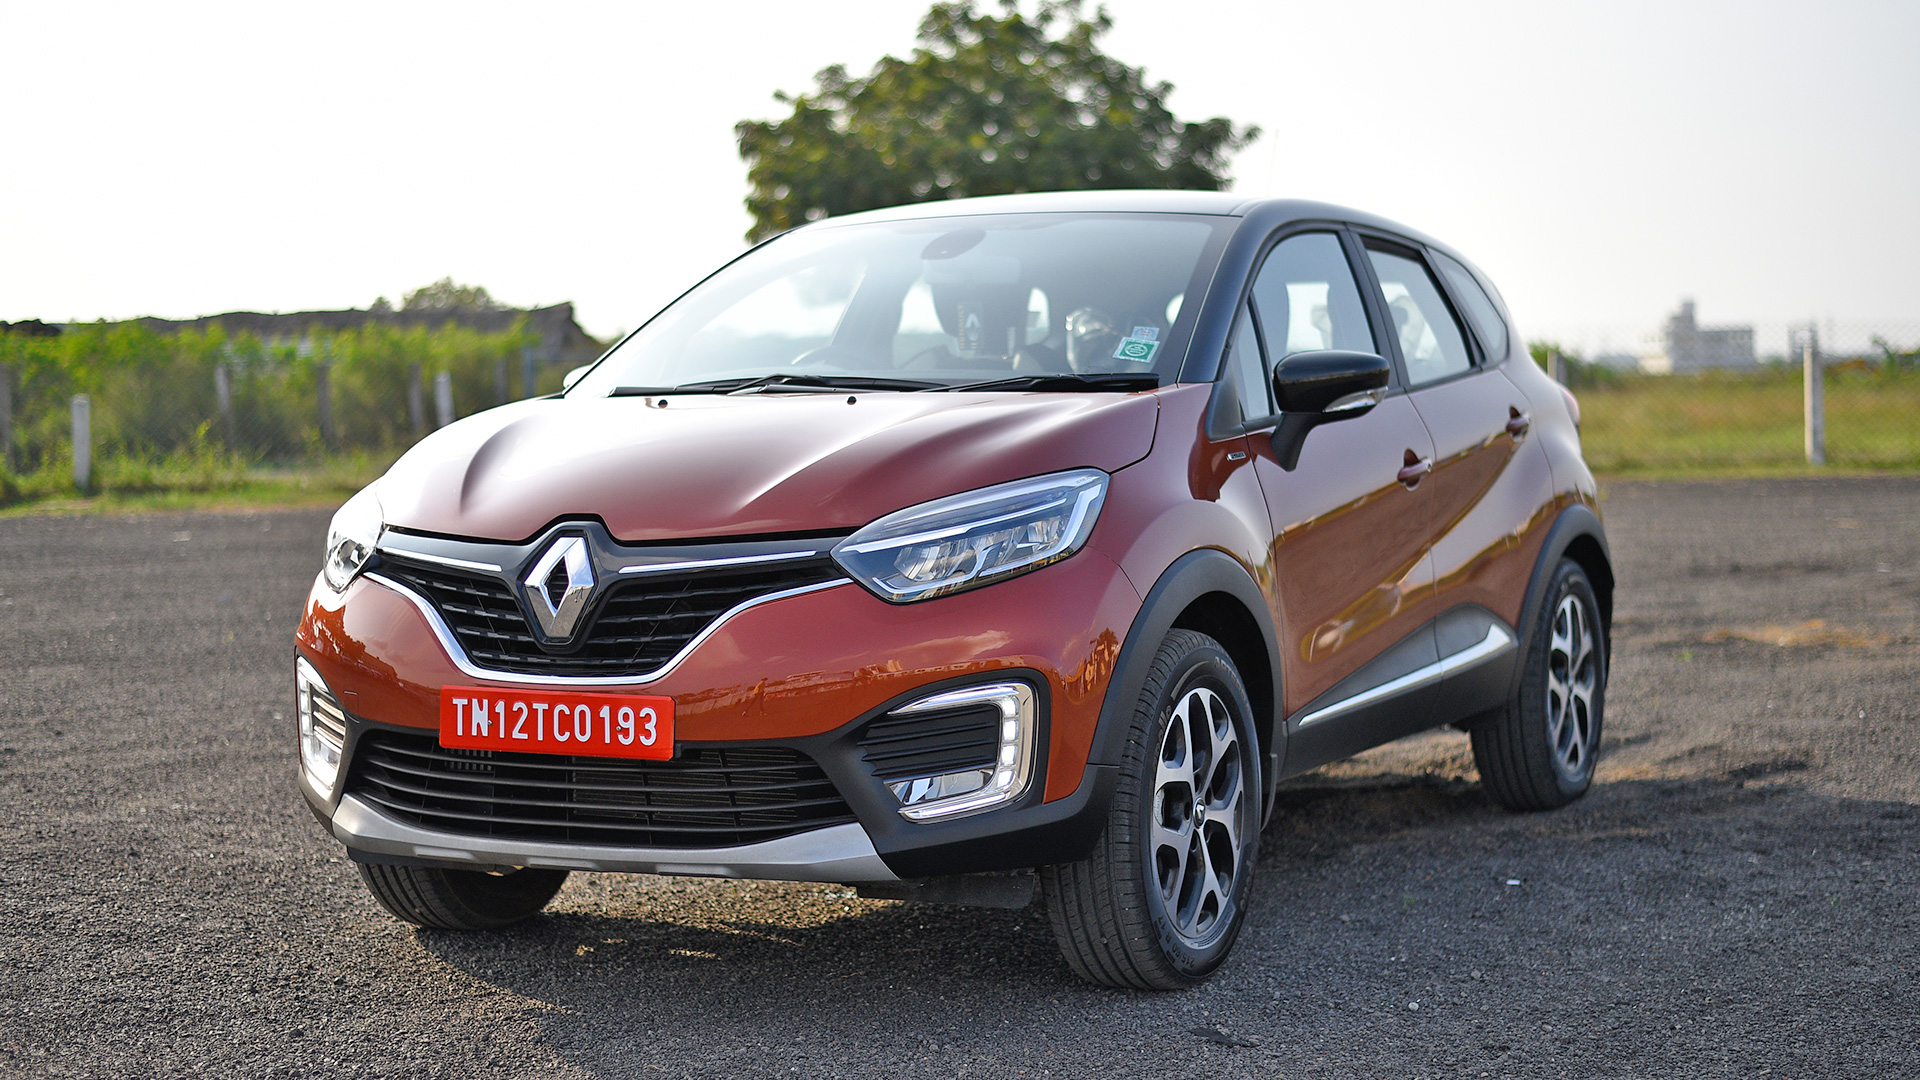 renault captur 2018 price mileage reviews specification gallery overdrive. Black Bedroom Furniture Sets. Home Design Ideas